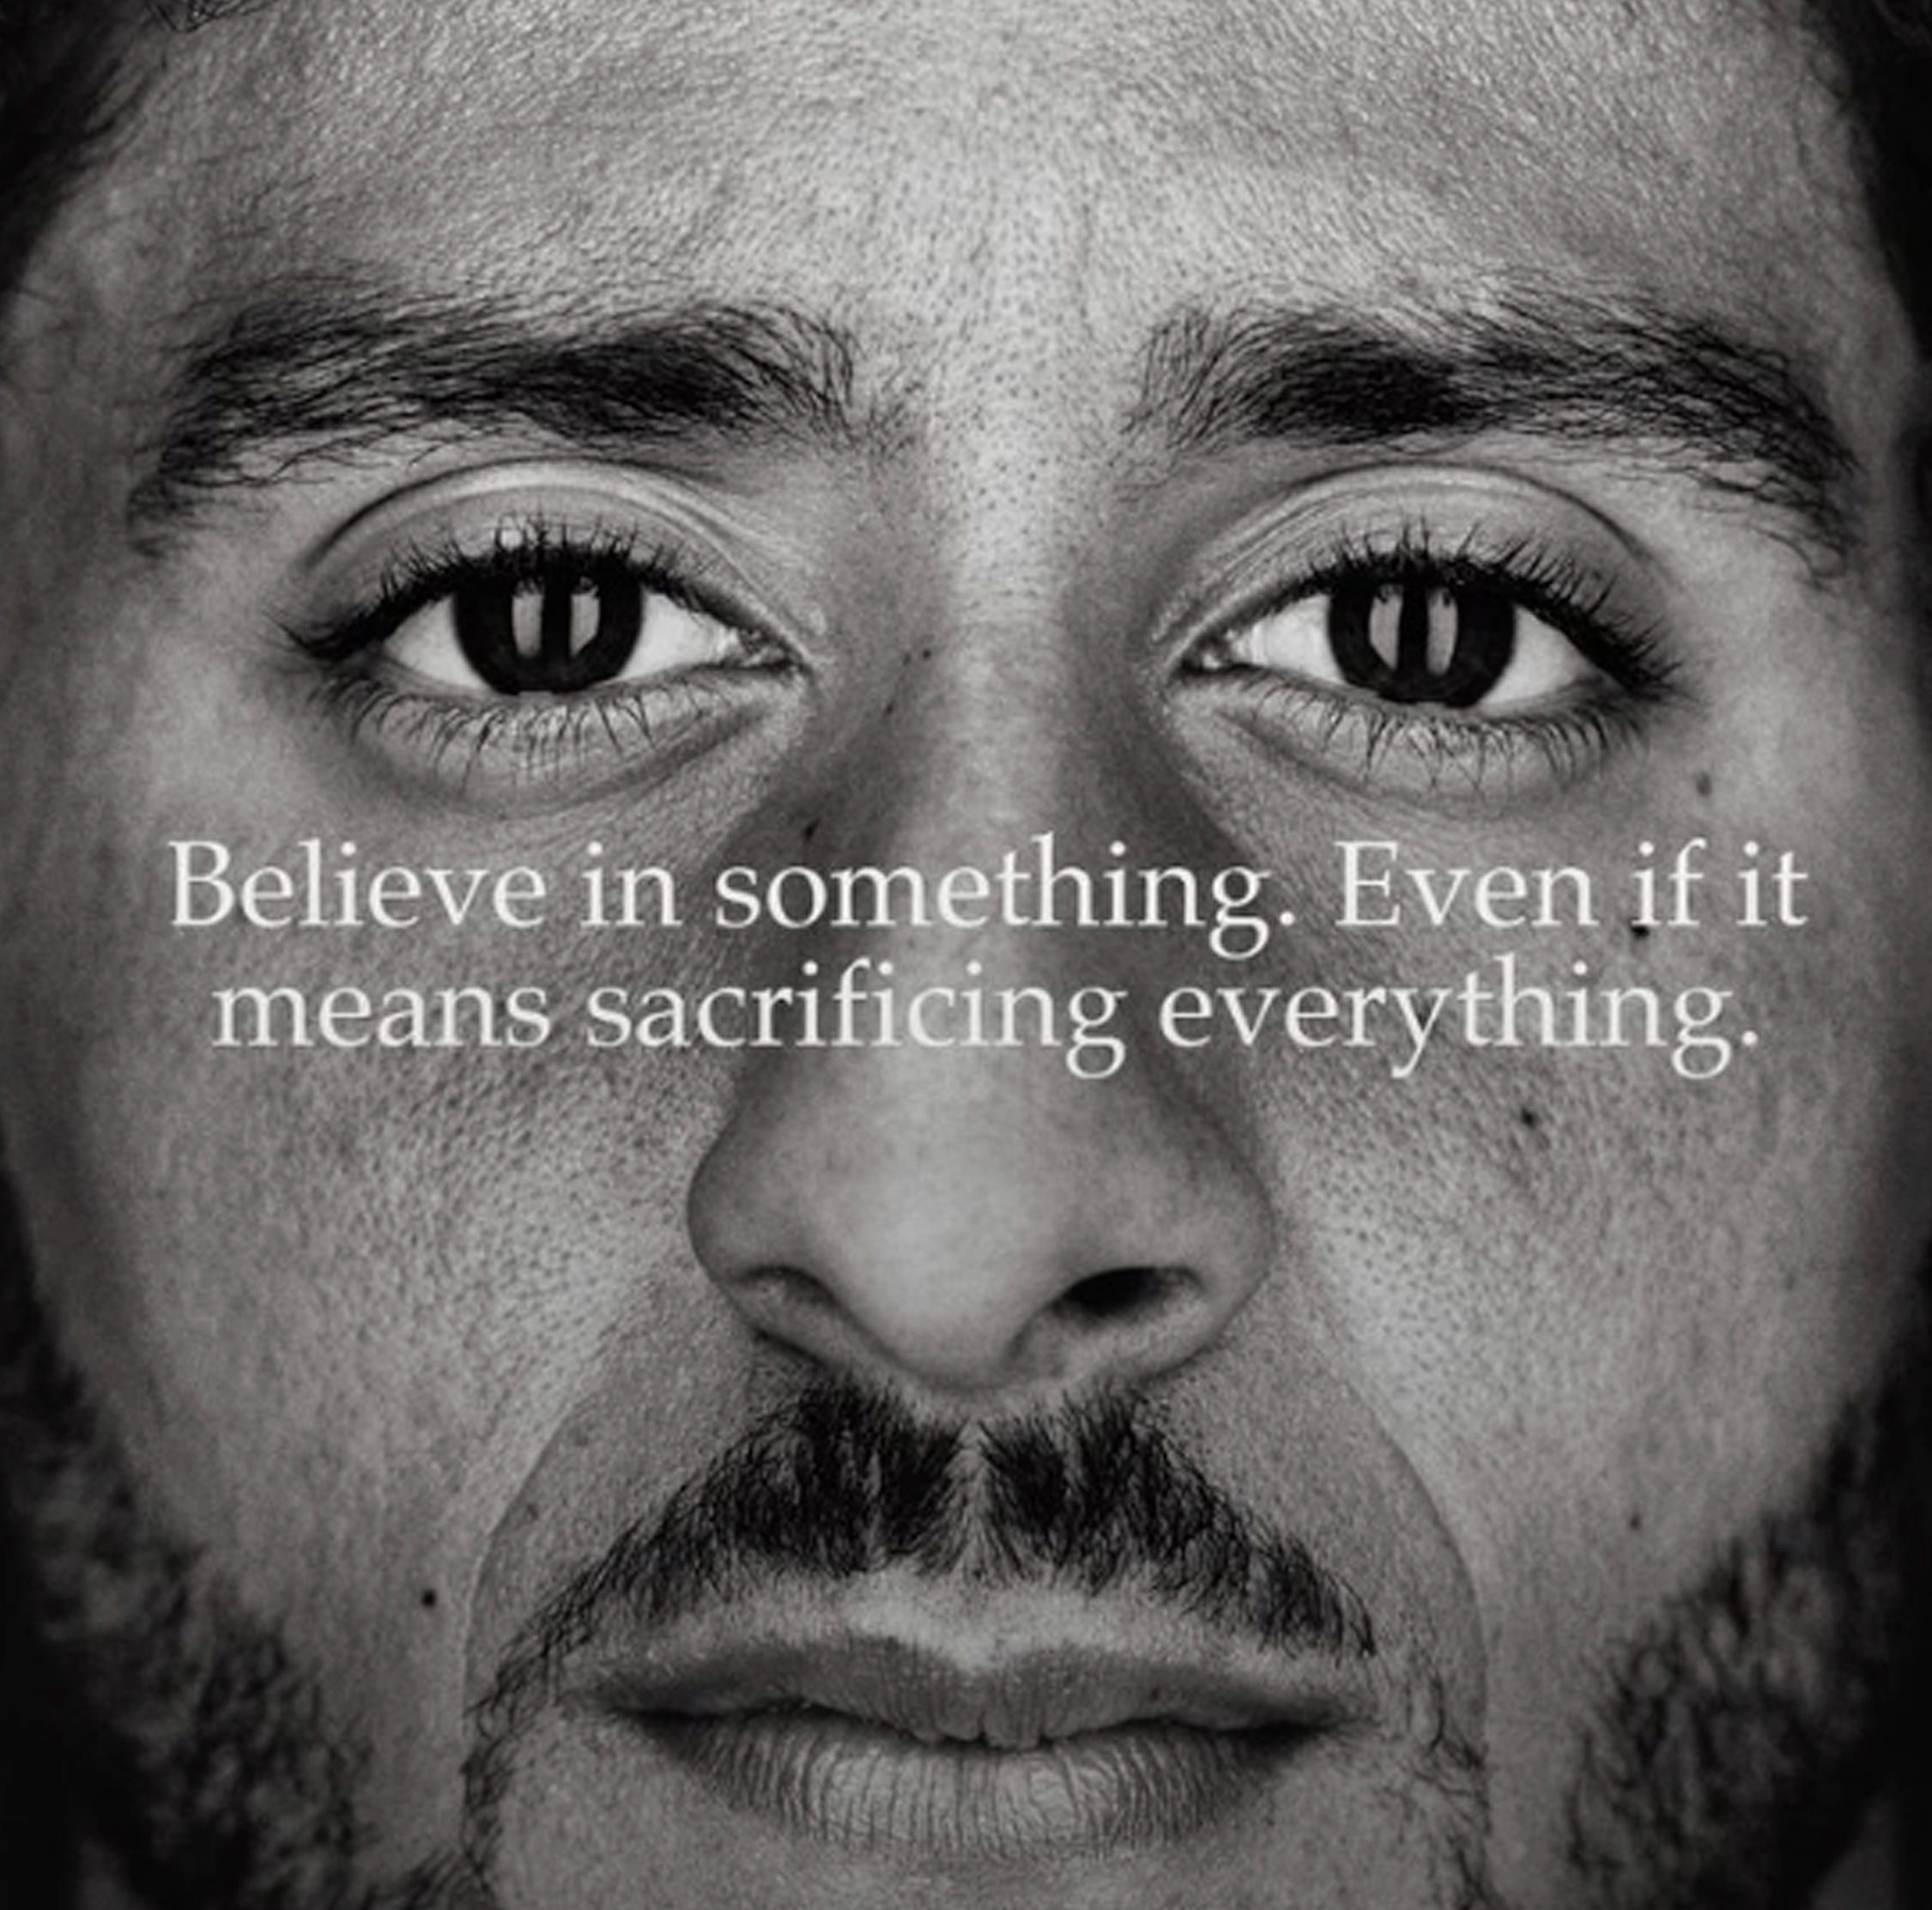 Nike Colin Kaepernick Commercial Campaign What Advertising Experts Say